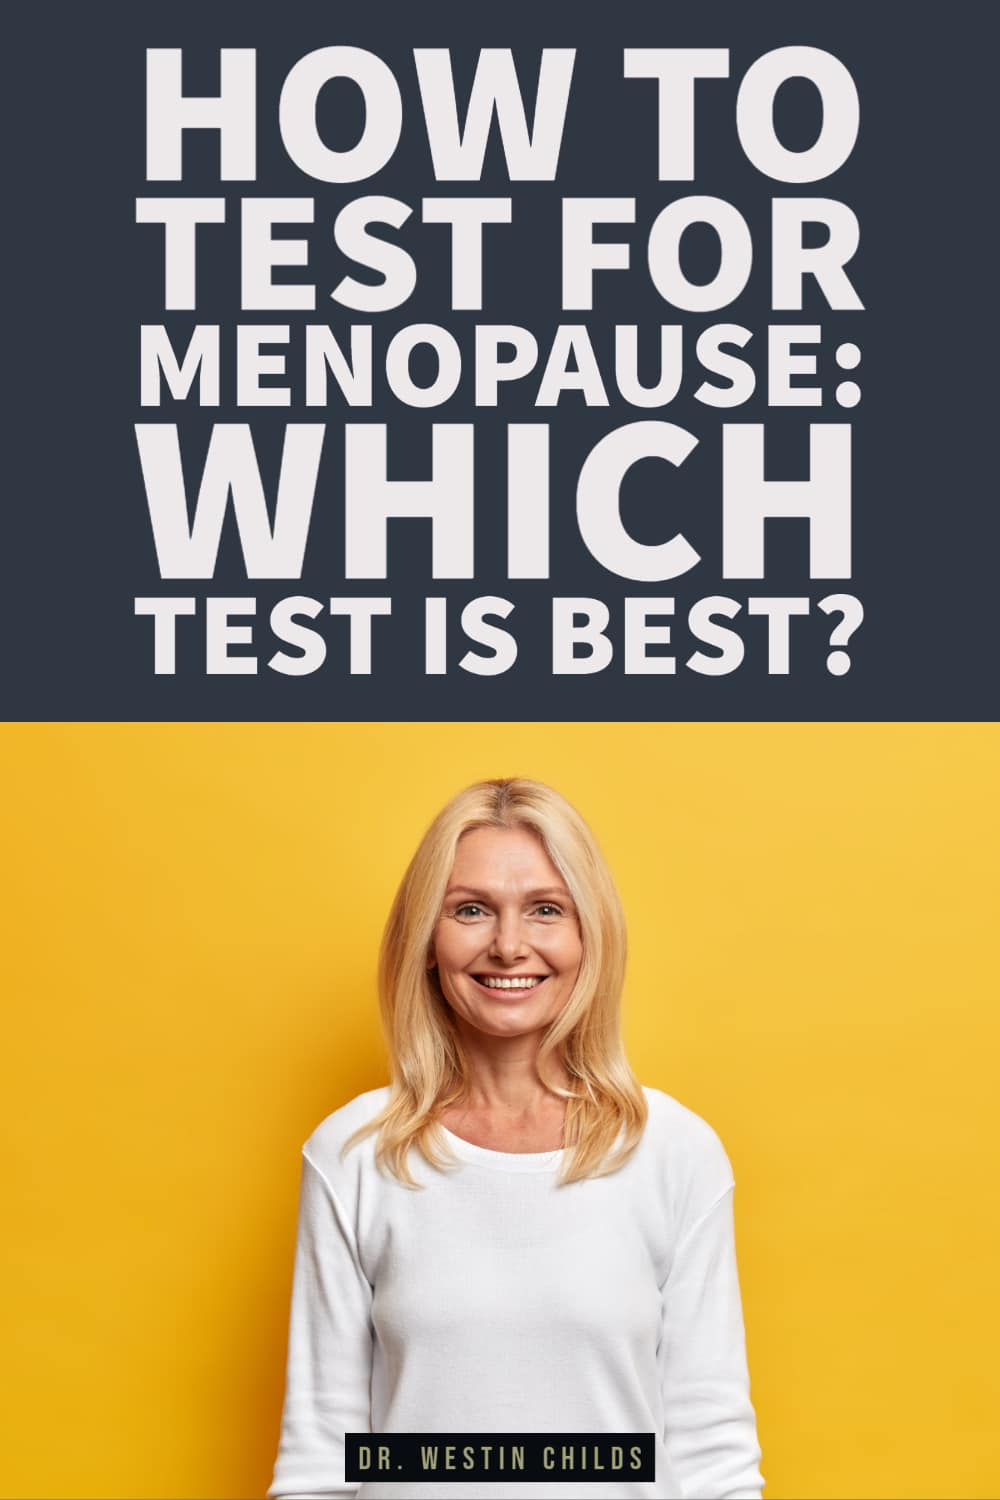 how to test for menopause: which test is best?